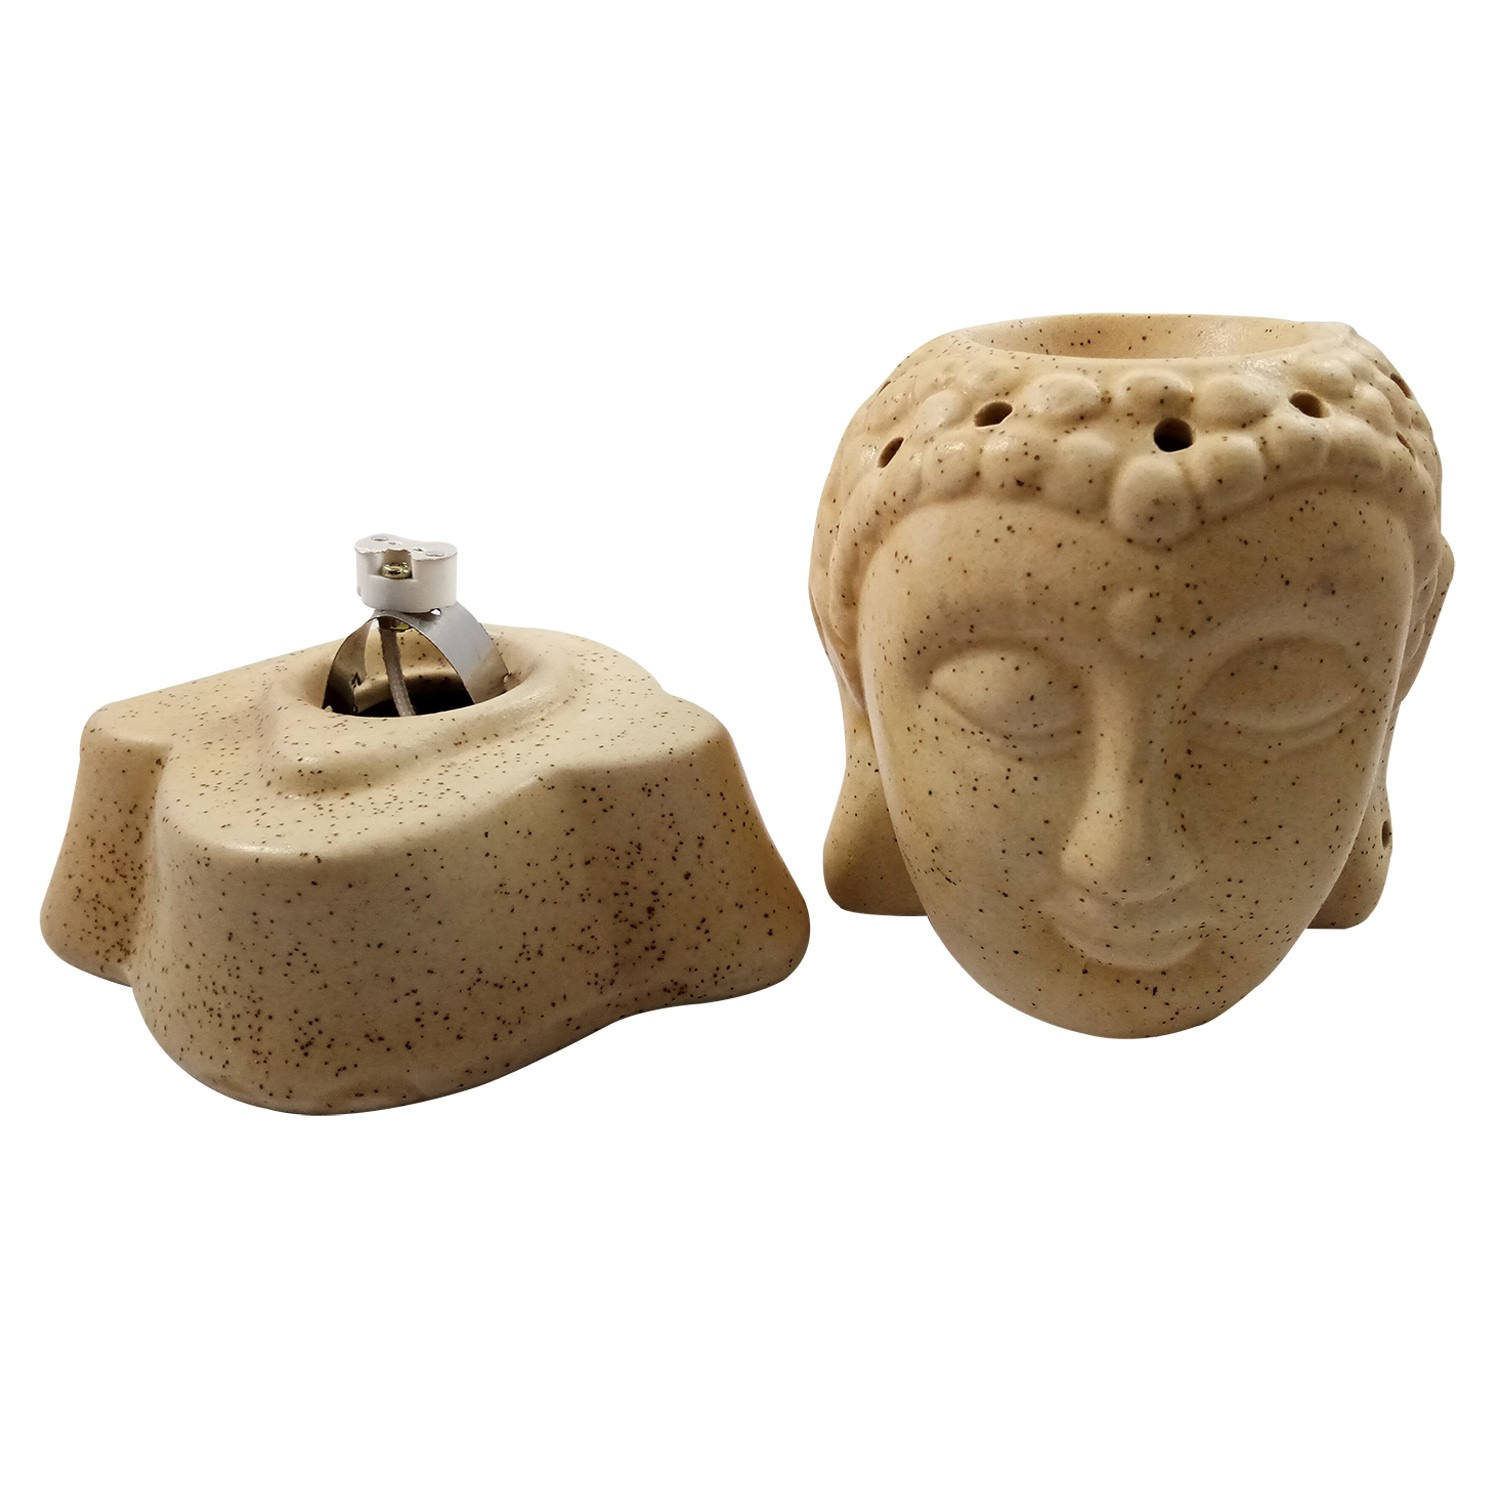 Handmade Ceramic Cream BLK Dot Lord Gautam Buddha Ethnic Electric Aroma Diffuser Oil Burner with Lavender Fragrance Oil Aromatherapy Incense Oil Warmer Qty 1